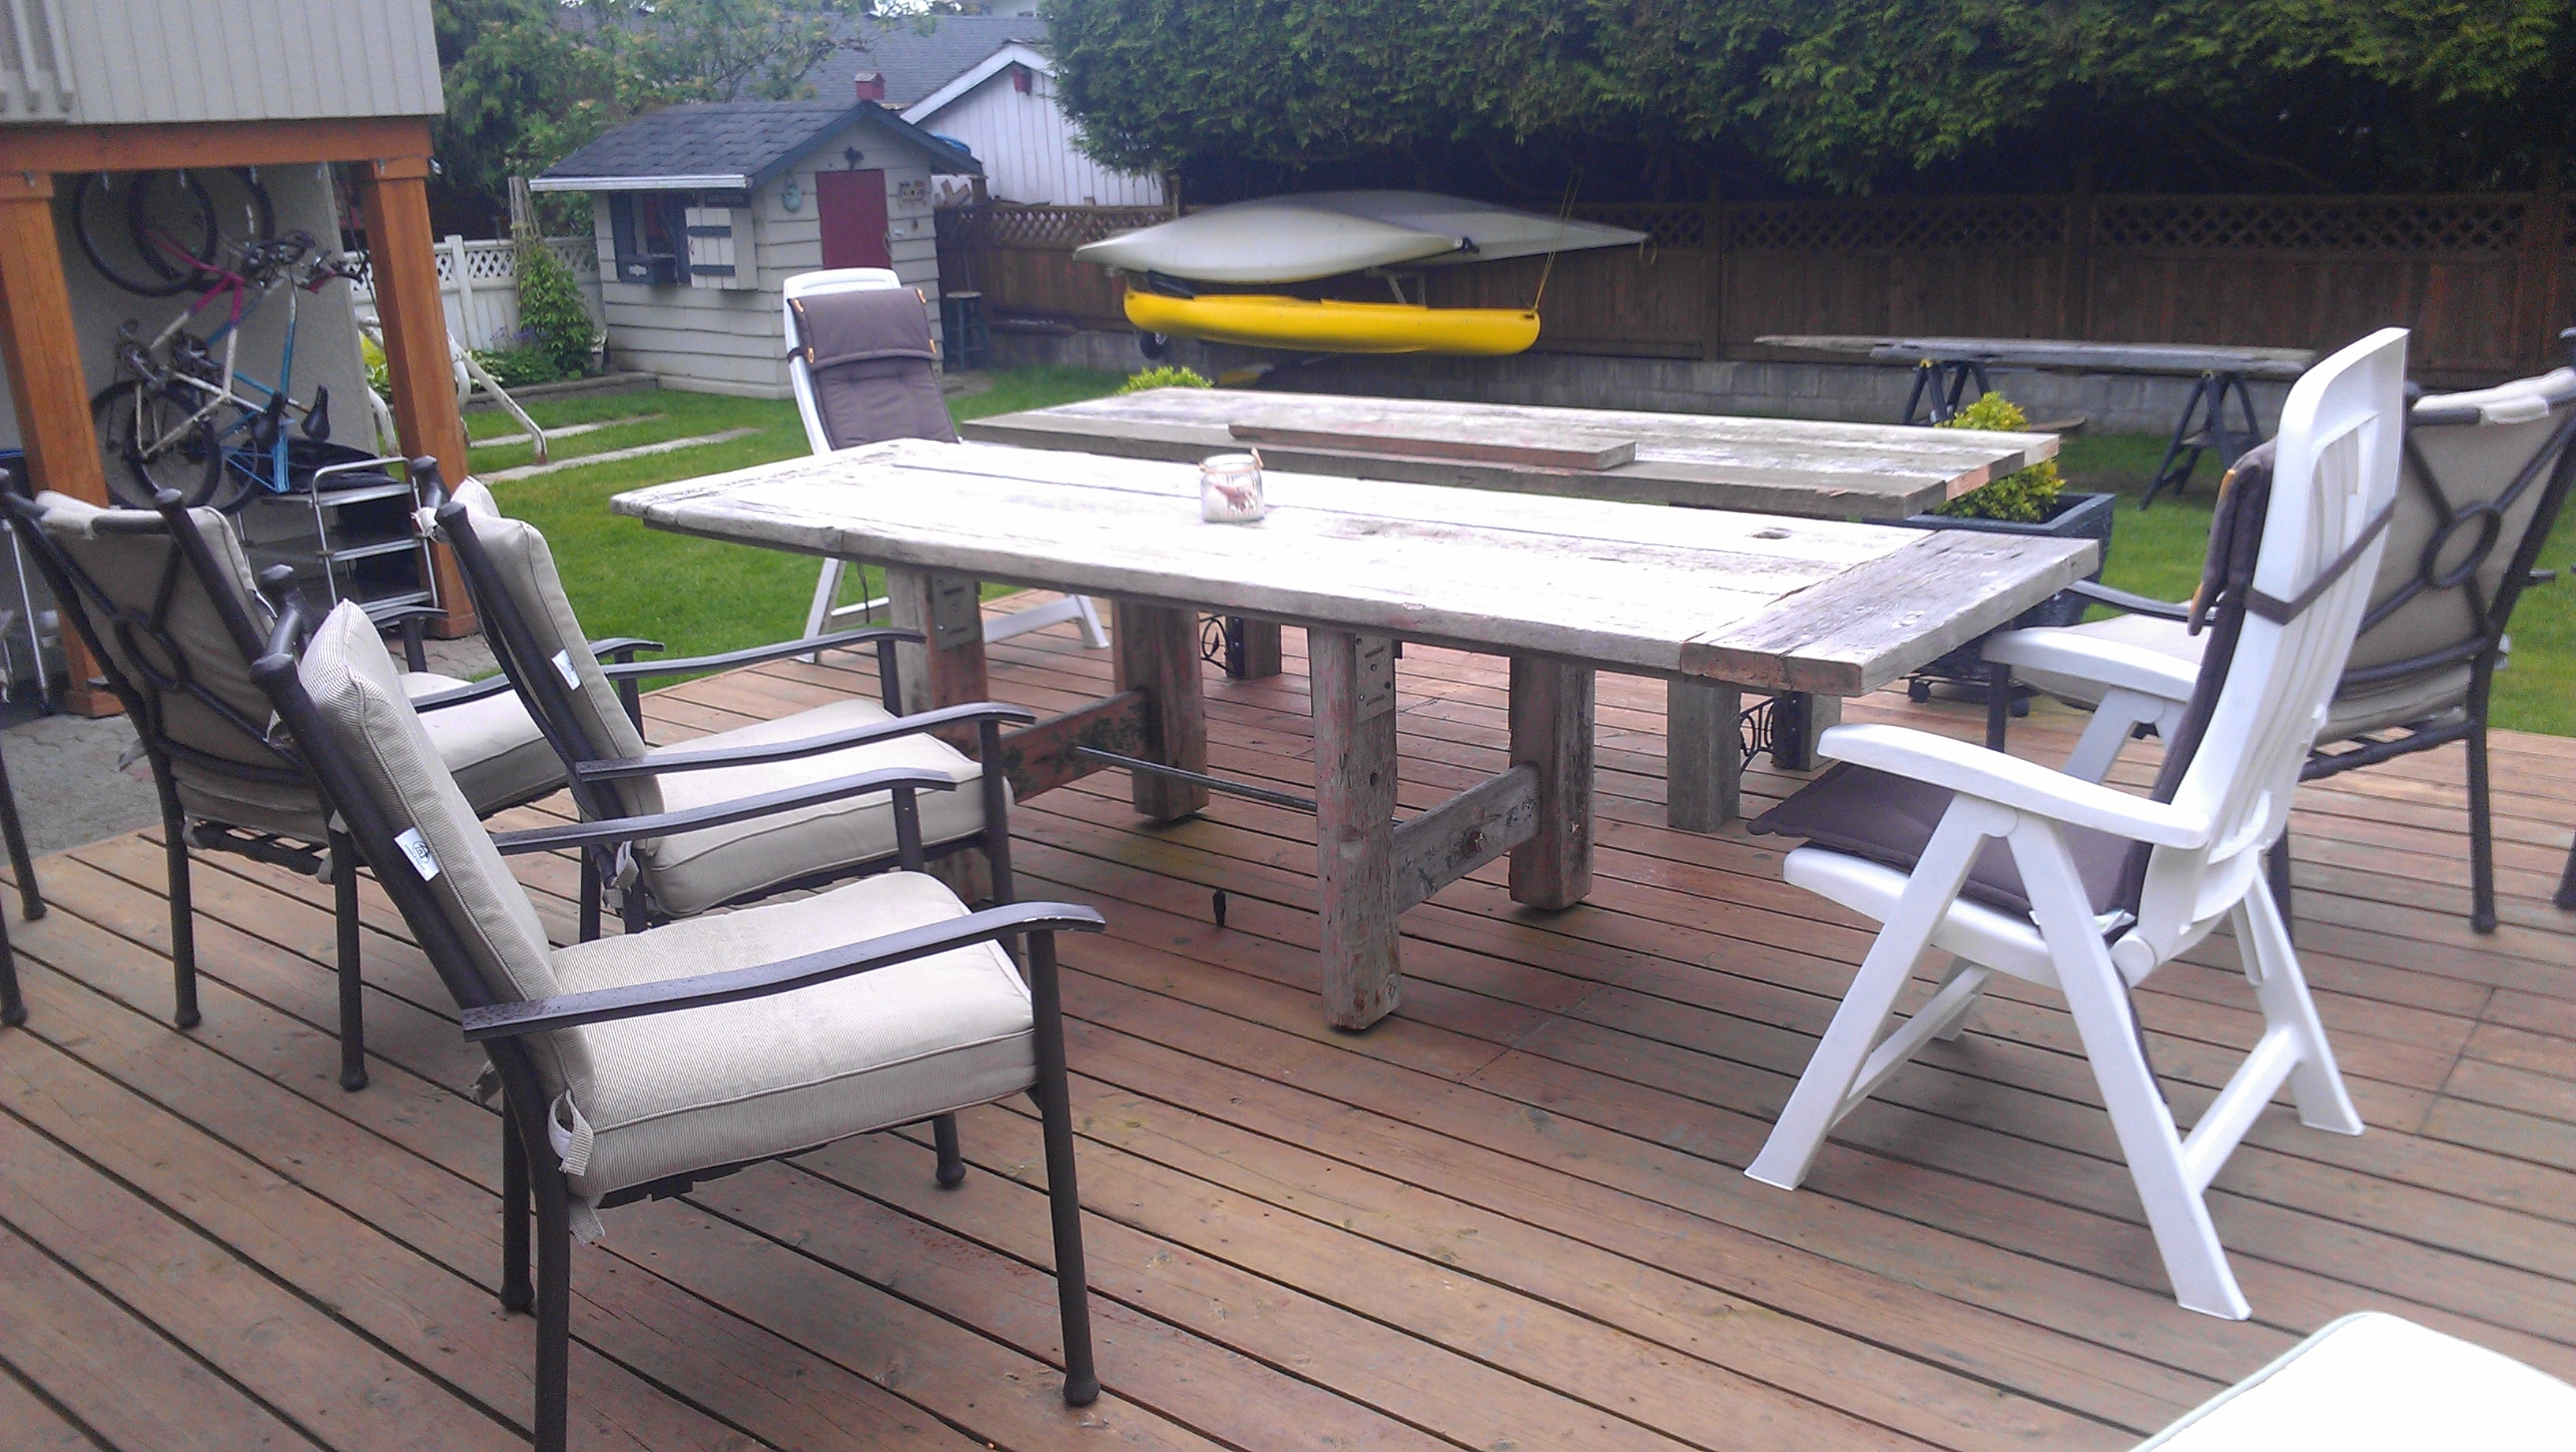 2018 Large Outdoor Table As Well Extra Patio Umbrellas With Plans Plus Regarding Extra Large Patio Umbrellas (View 9 of 20)